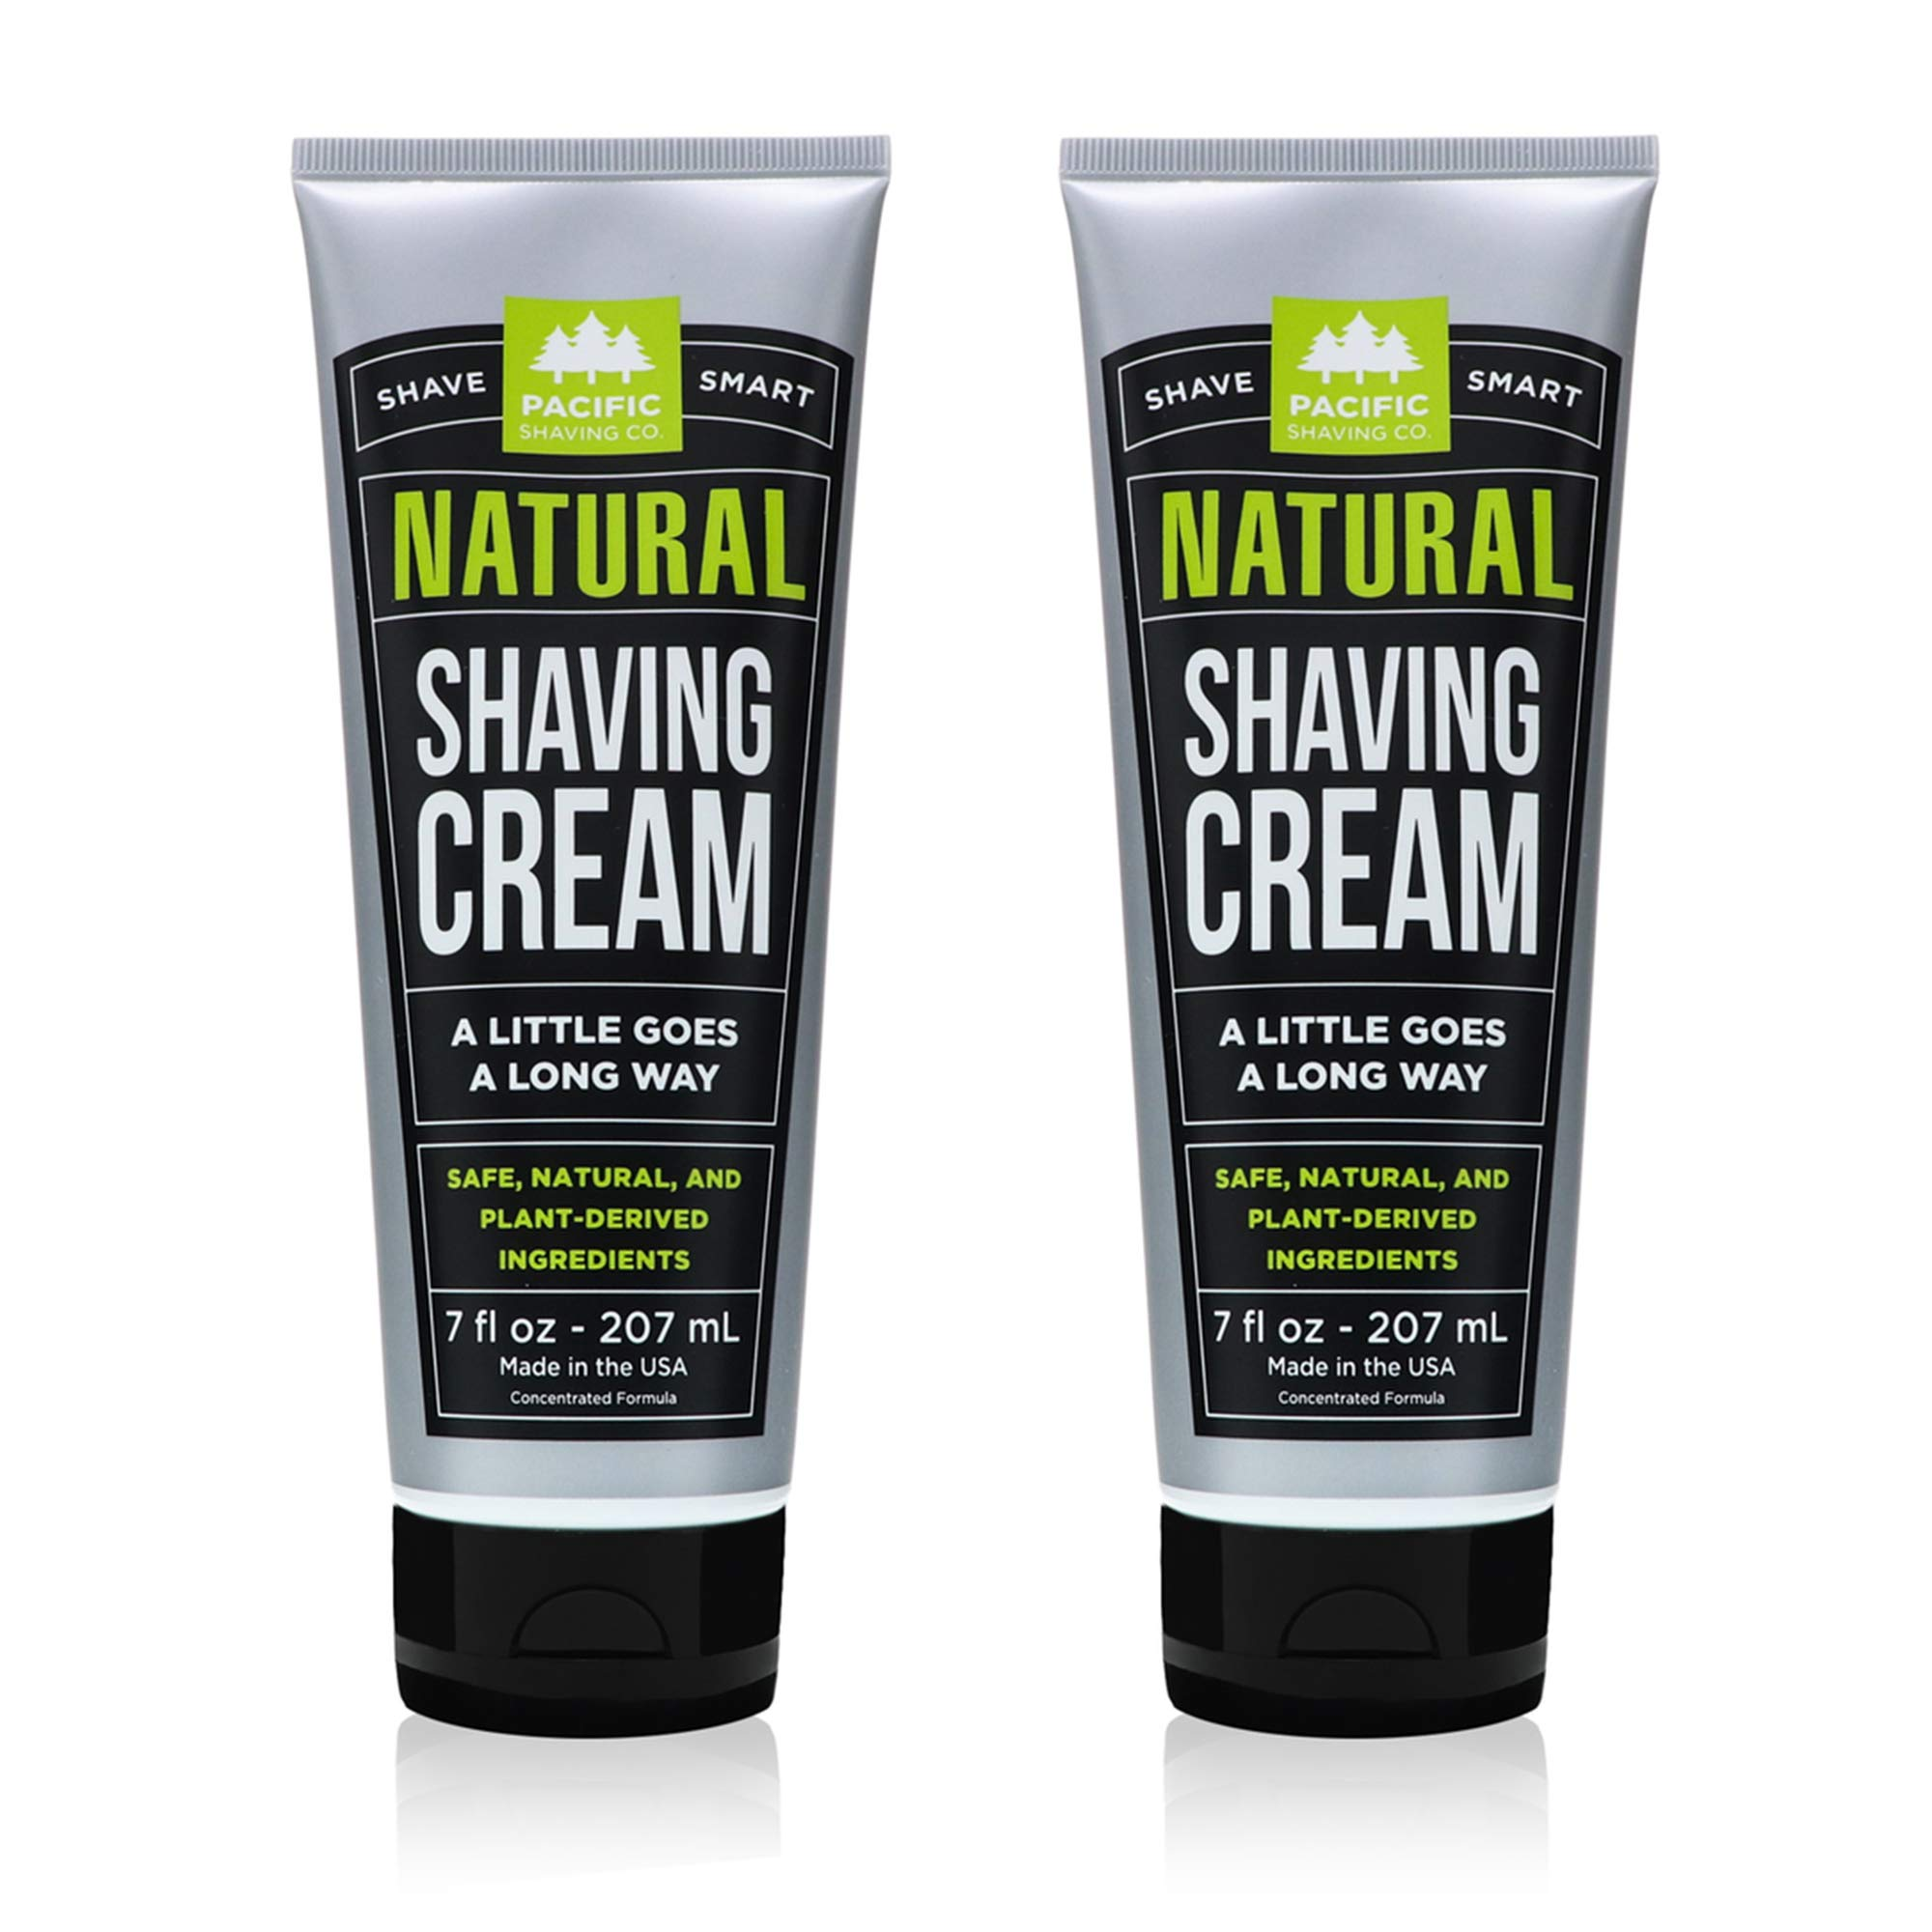 Pacific Shaving Company Natural Shave Cream - with Safe, Natural, and Plant-Derived Ingredients for a Smooth Shave, Healthy, Hydrated, Softer Skin, Less Irritation, Cruelty-Free, 7 oz (Pack of 2)